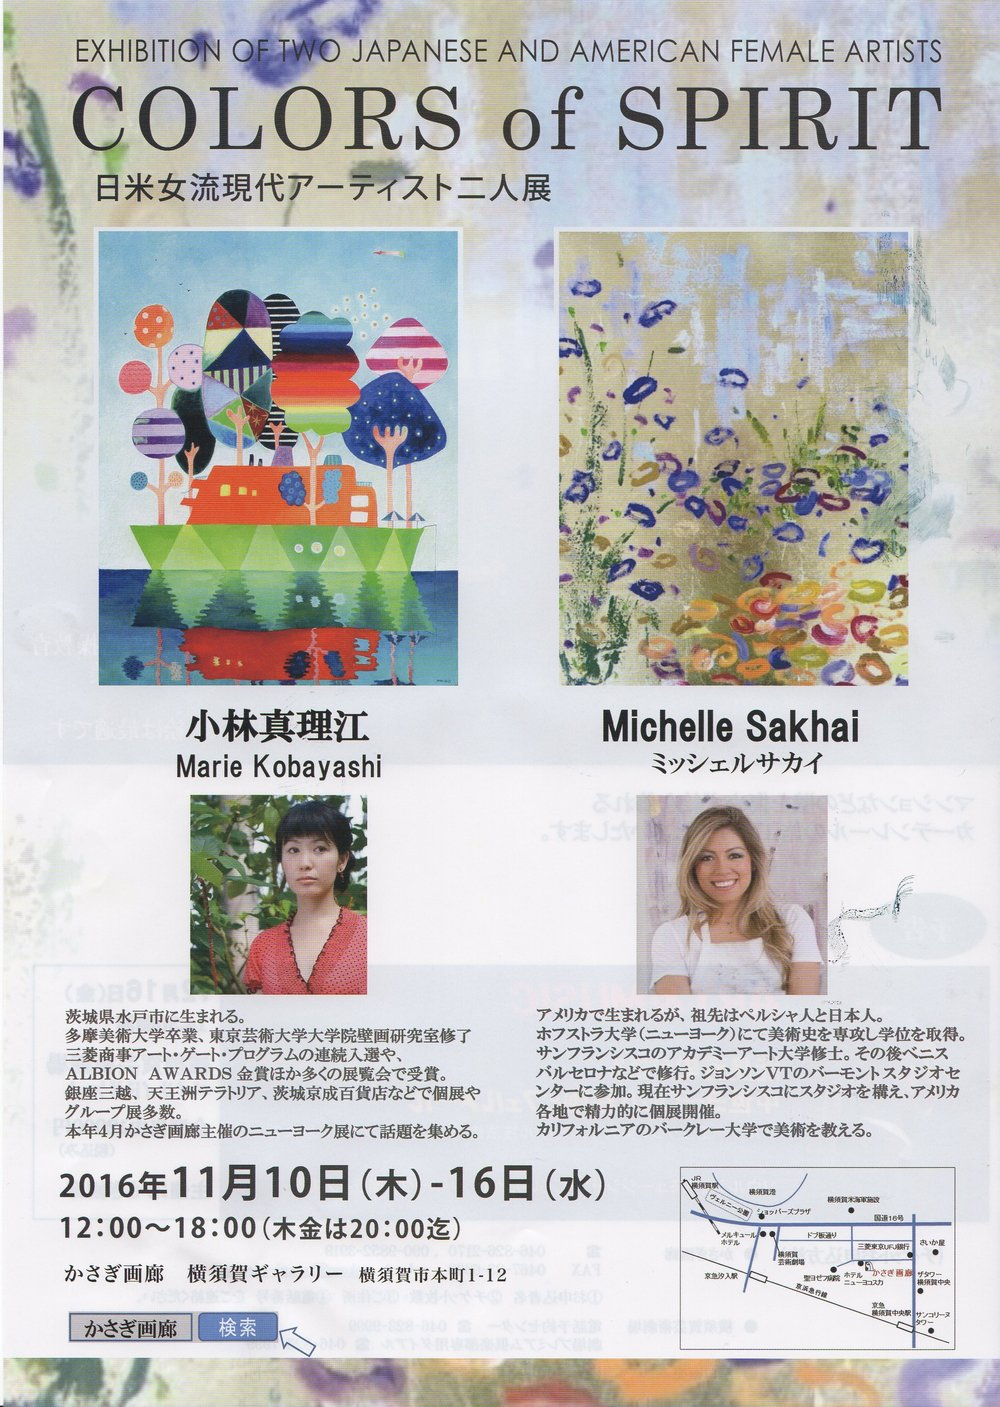 COLORS OF SPIRIT - Two person exhibitionOn view November 19-30, 2016Gallery Kasagi, Japan1-12 Honcho, Yokosuka-ish, Kanagawa Prefecture, Japan